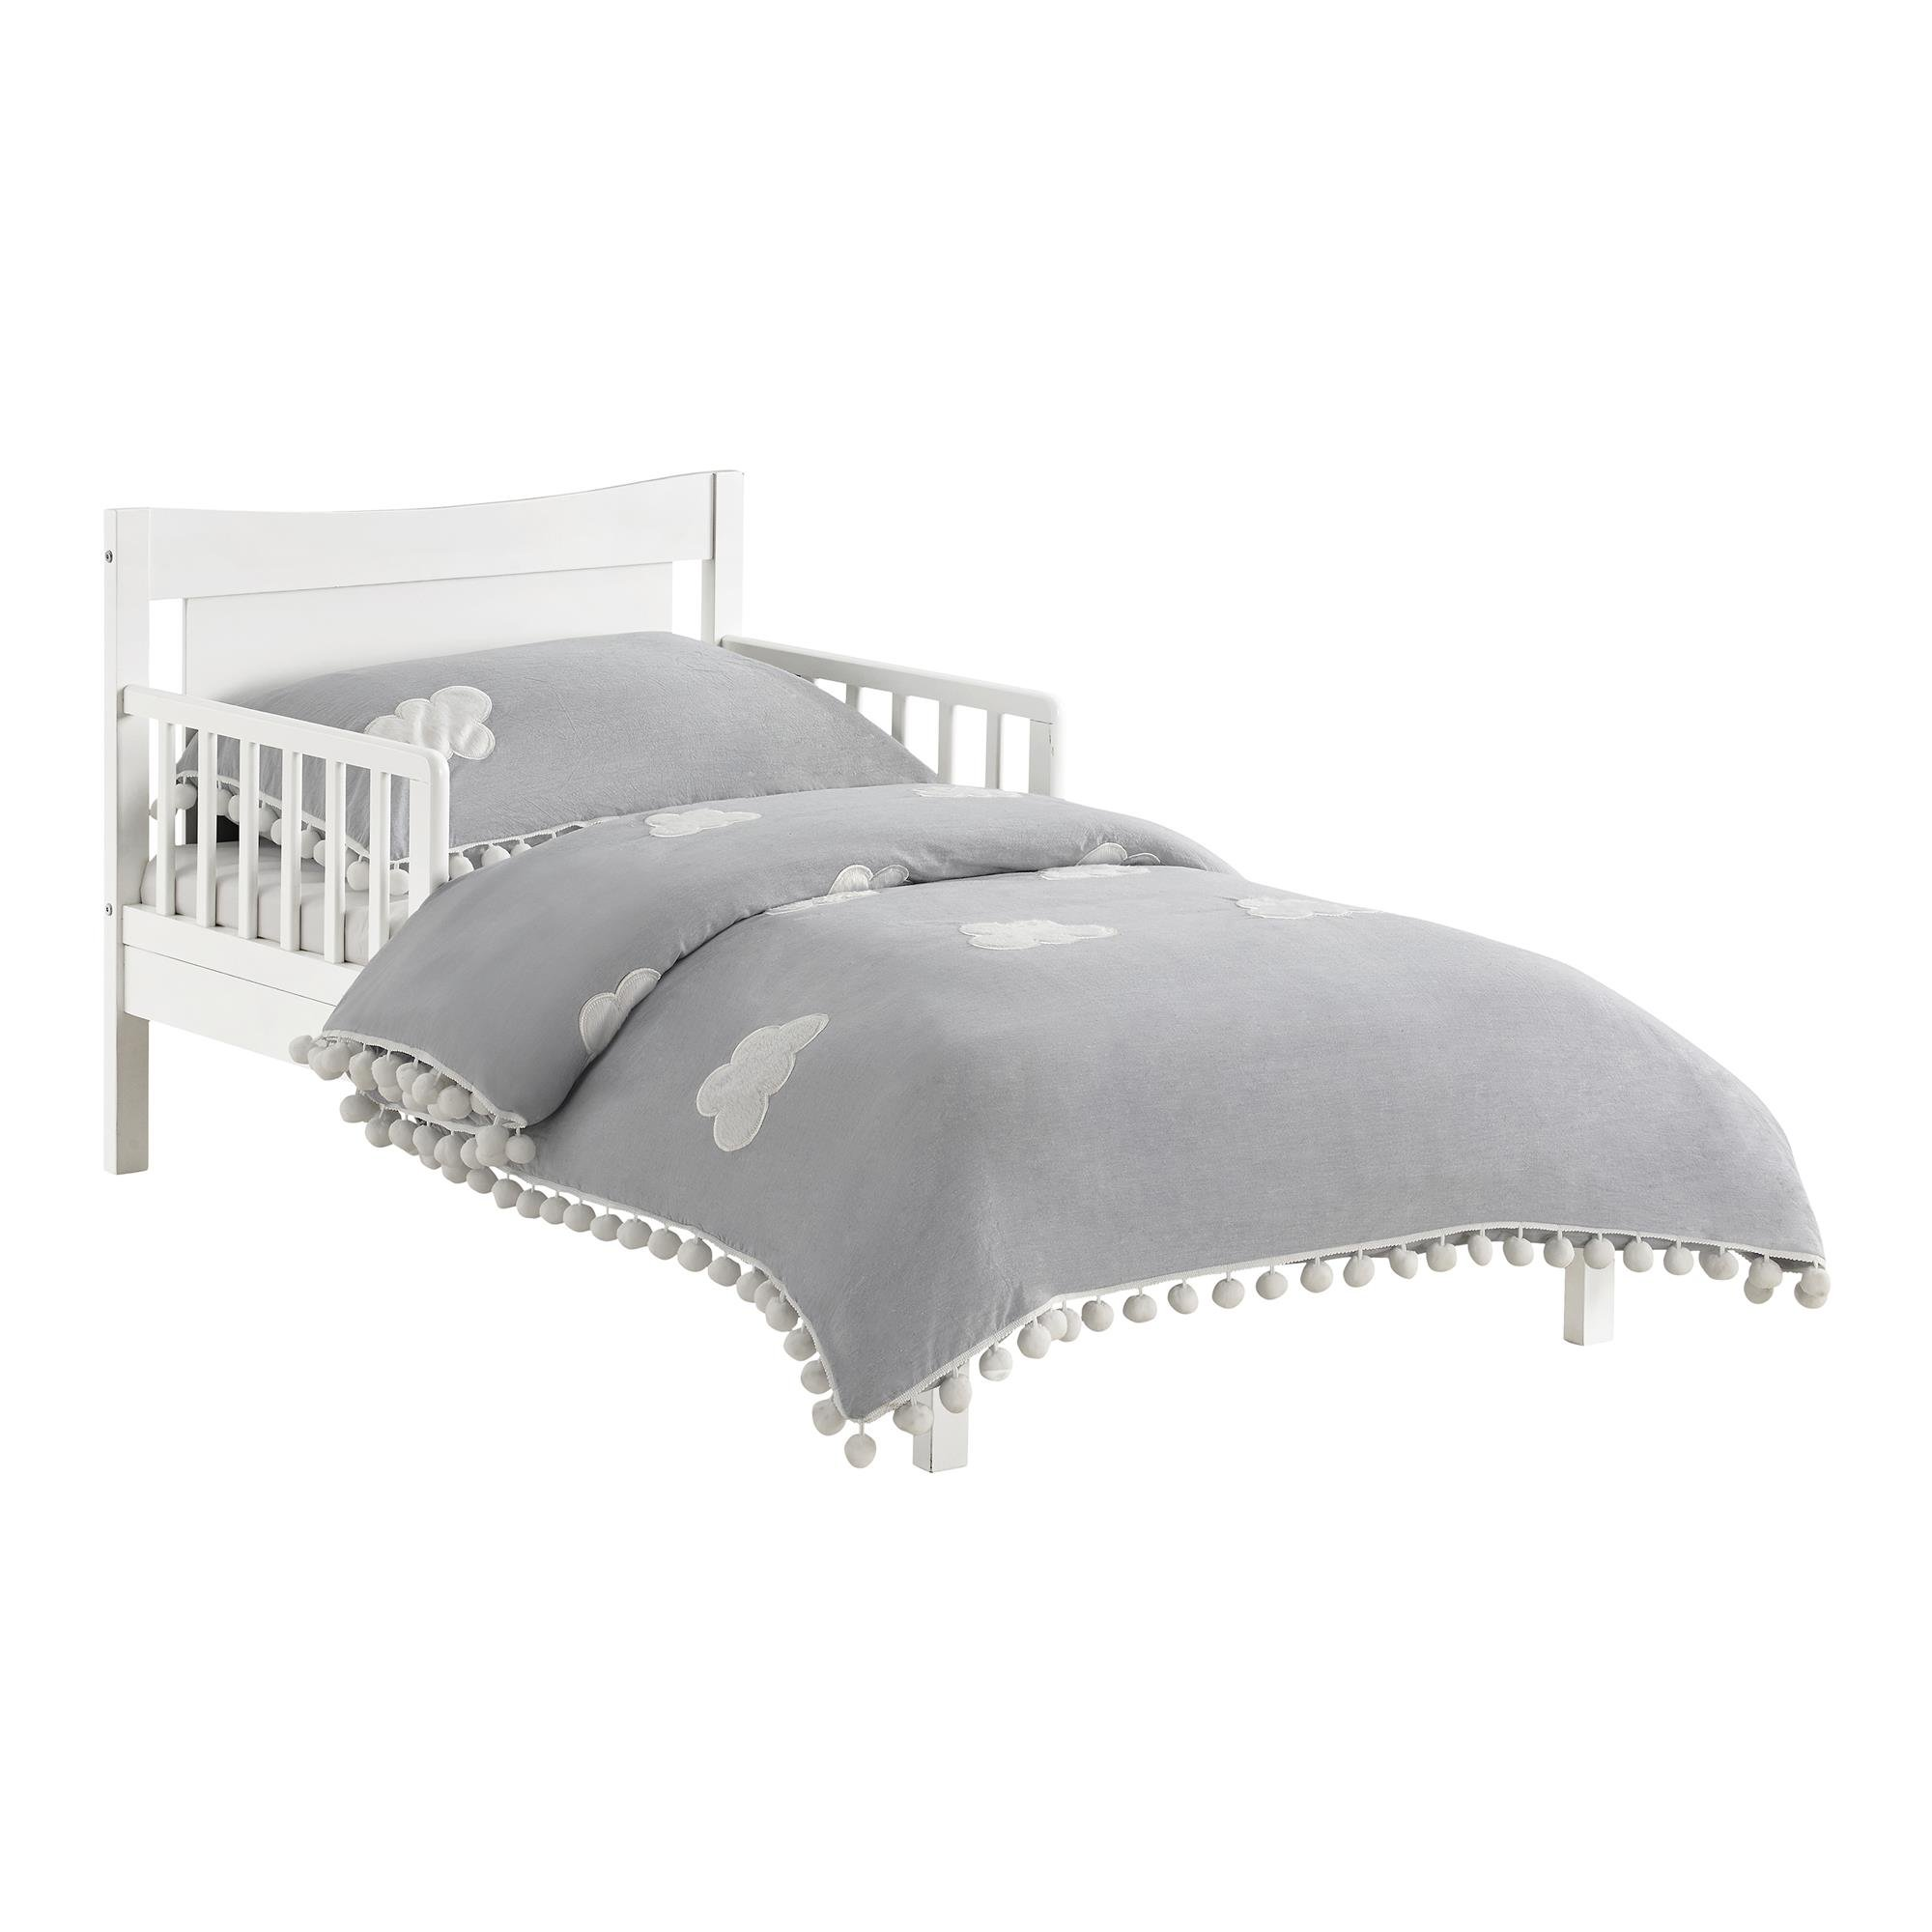 Baby Relax Memphis Toddler Bed, White by Baby Relax (Image #1)